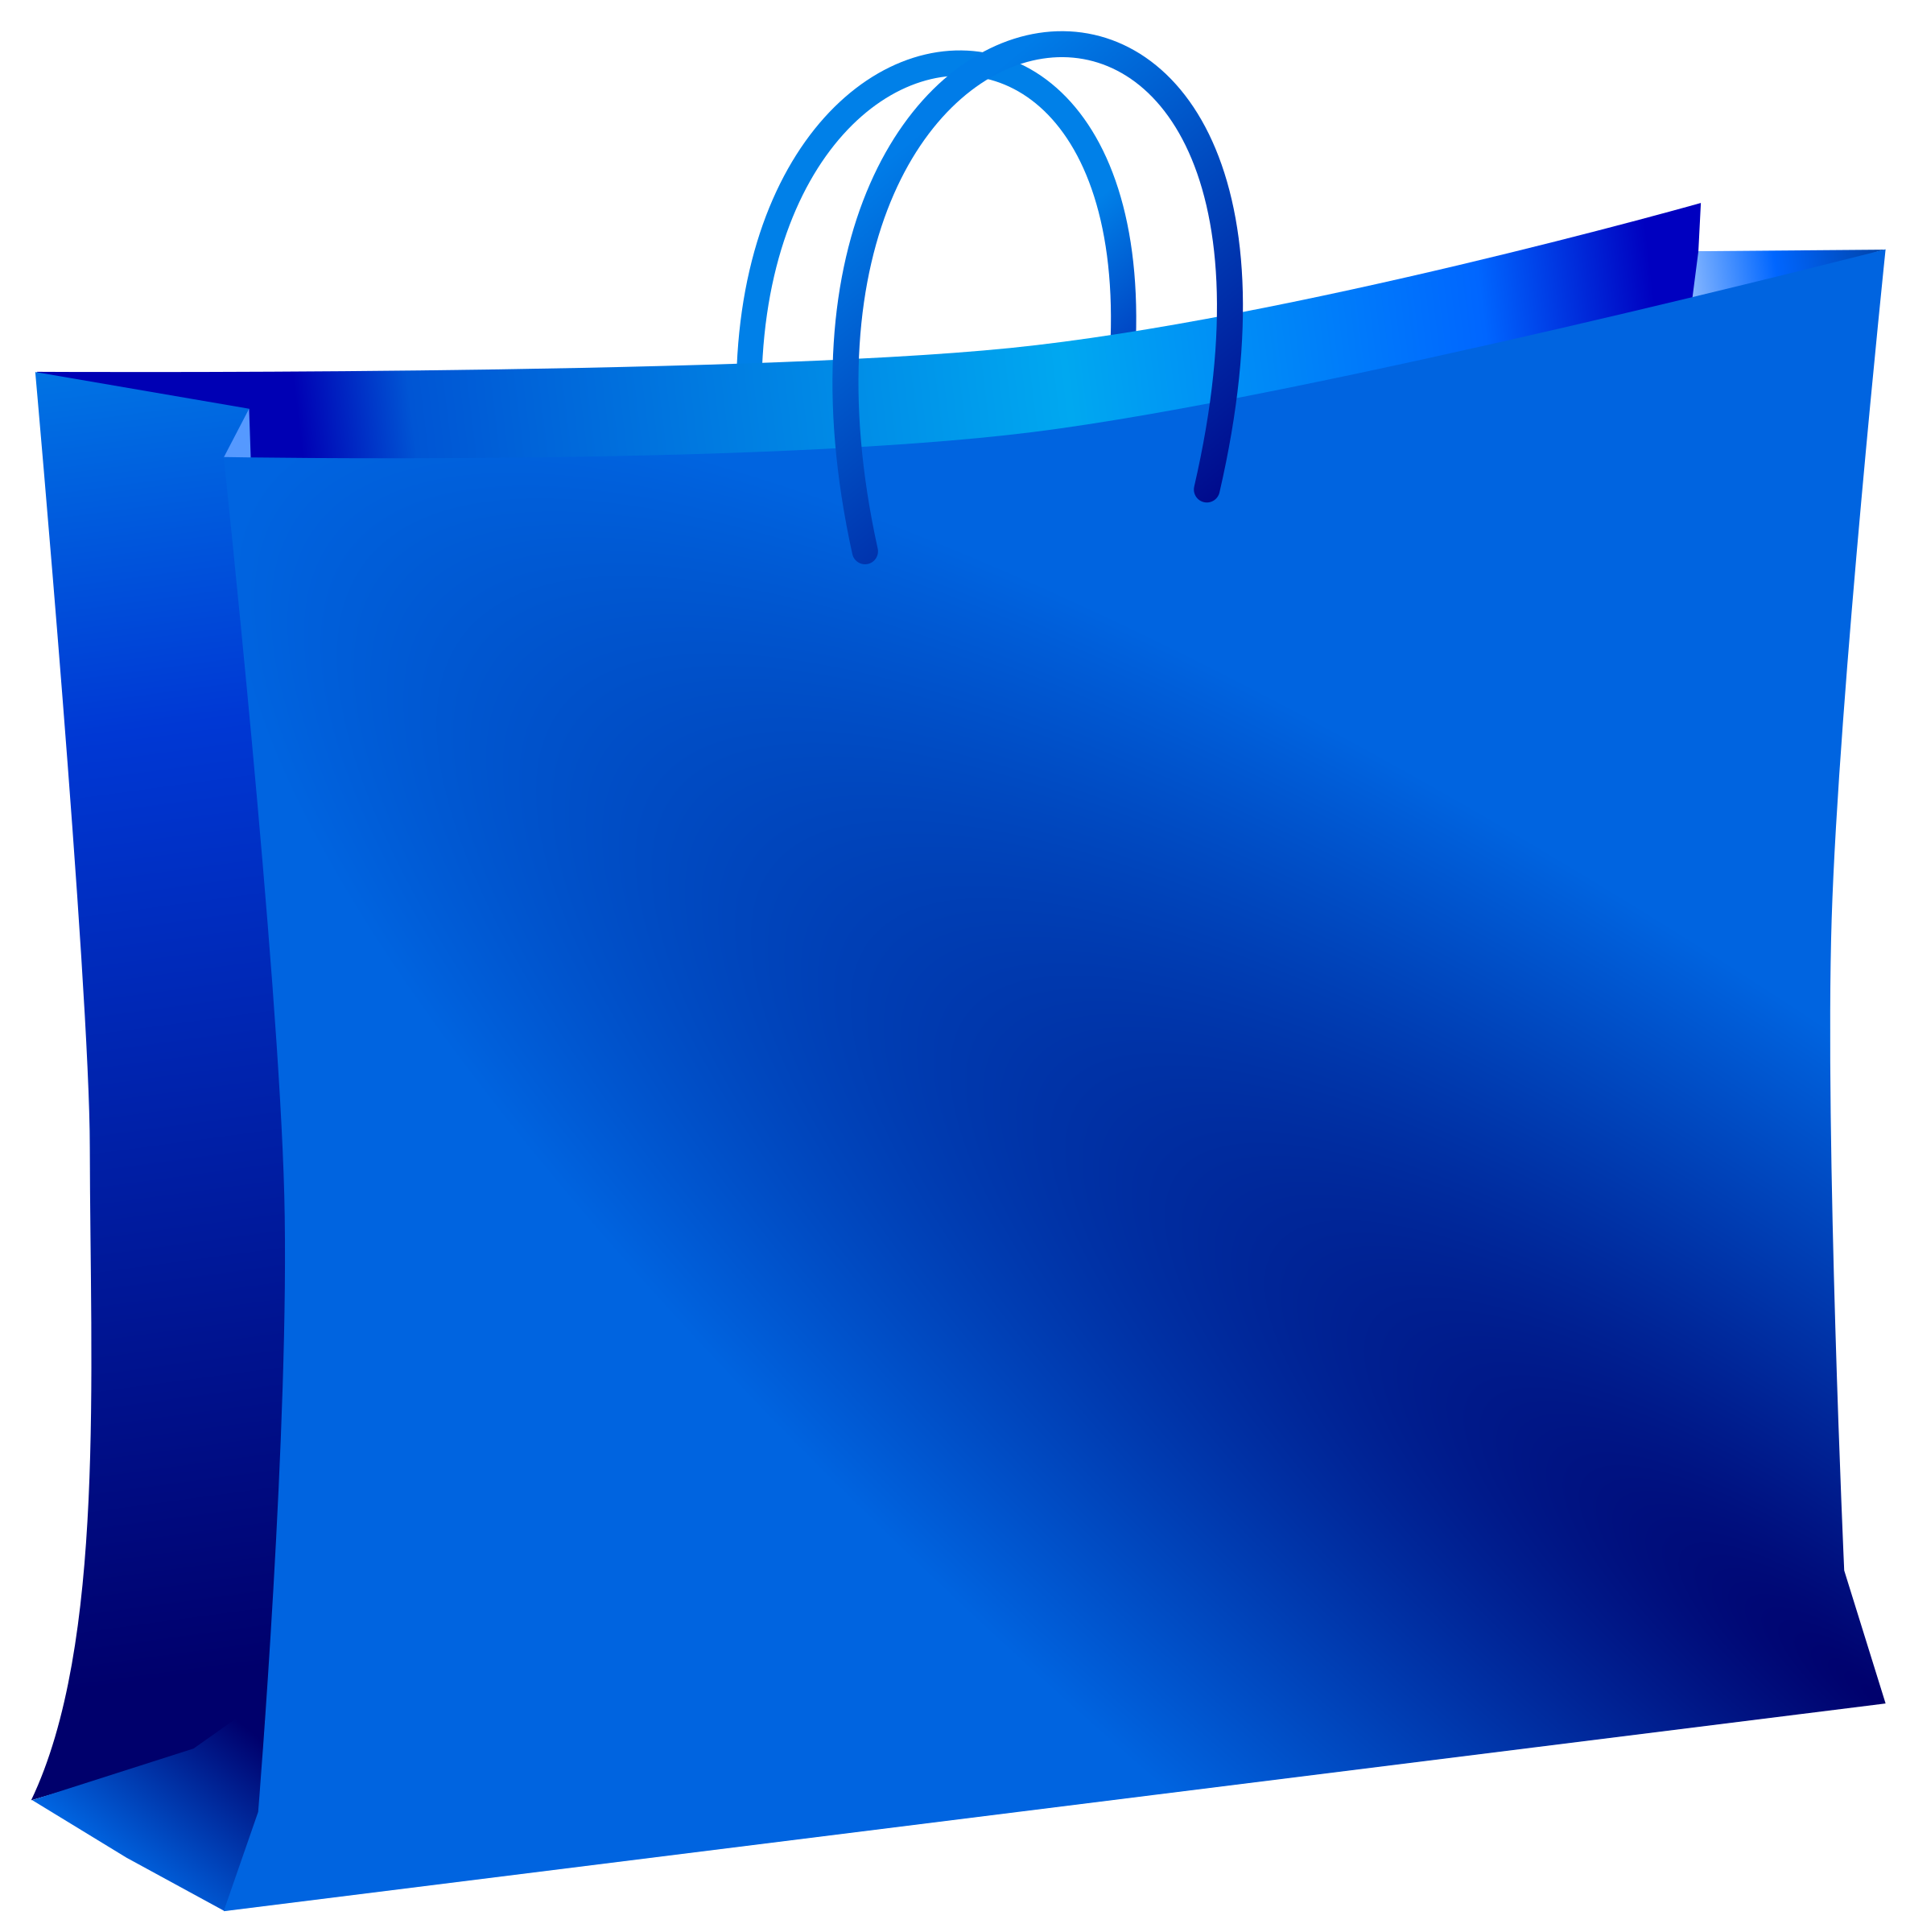 Bag clipart #3, Download drawings